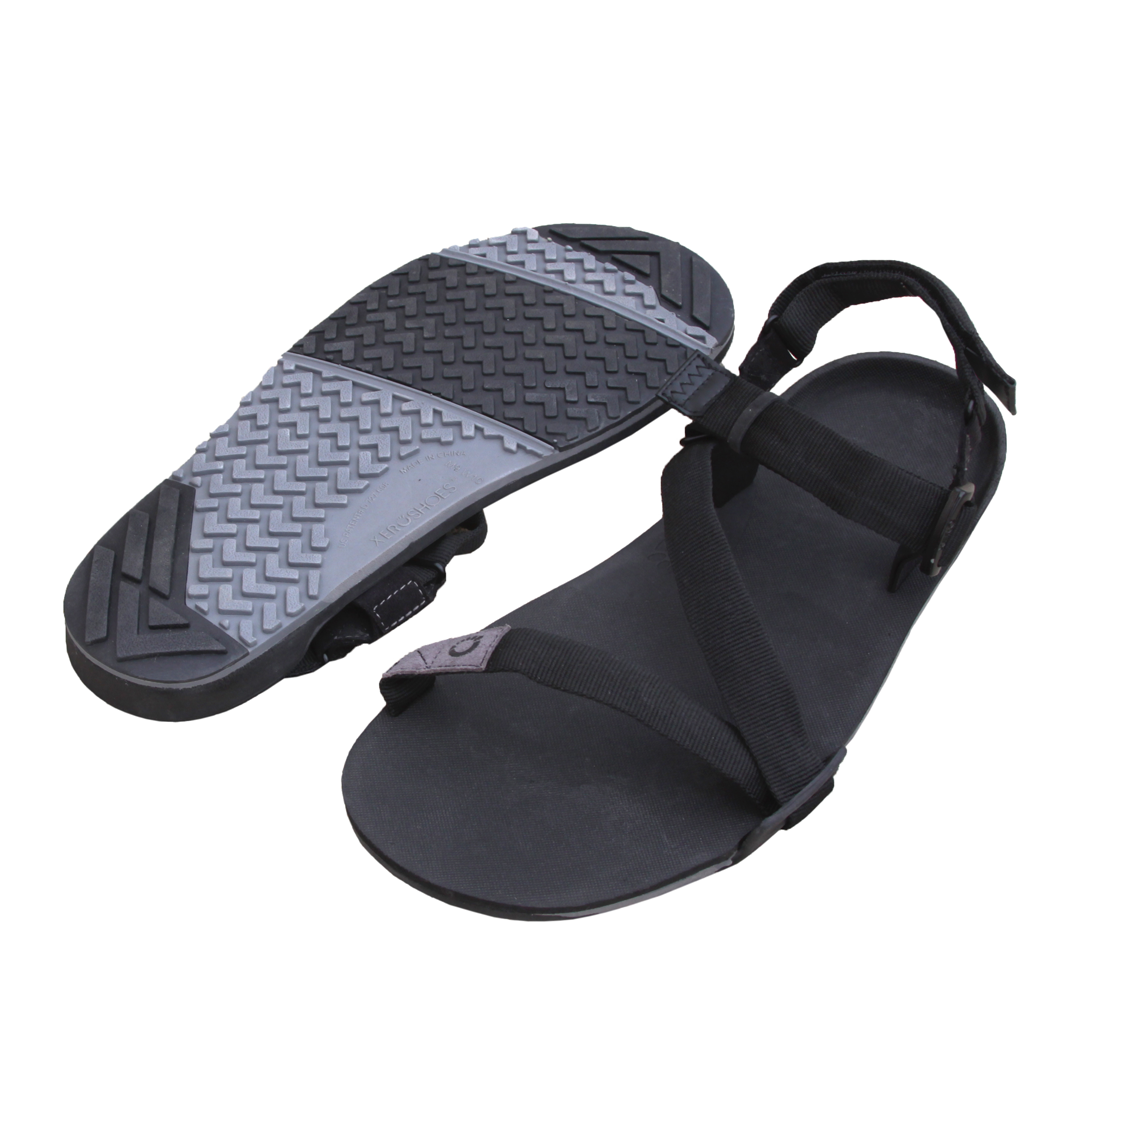 Brilliant Theyre Technically Womens Only, But Unisex Styling Means Everyone Wear Them Size Up For Best Fit When Less Is More, Xero Shoes, Which Have A Zero Dropaka Totally Flatheel For Natural Posture, Let Your Feet Operate As If You Were